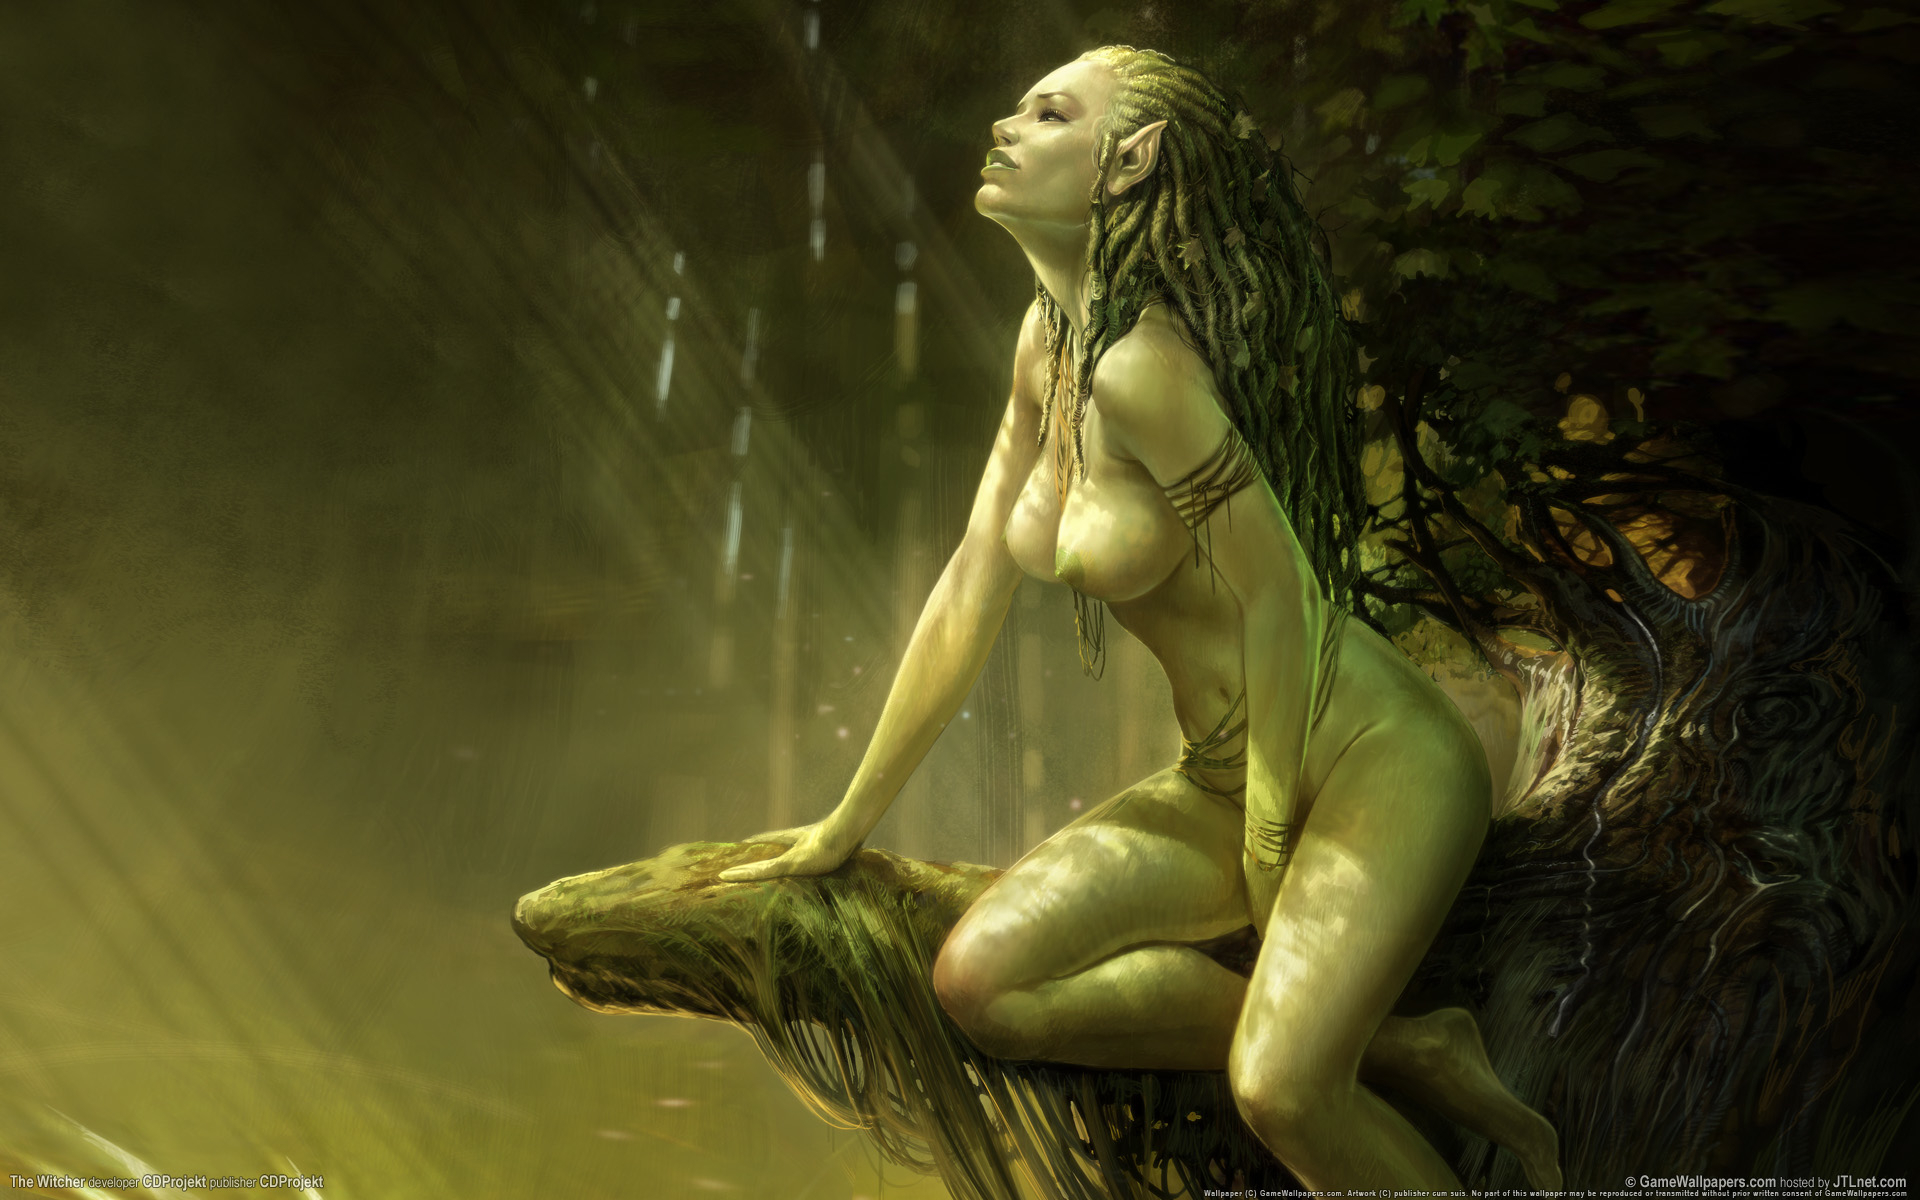 Nude hot elf women remarkable, very